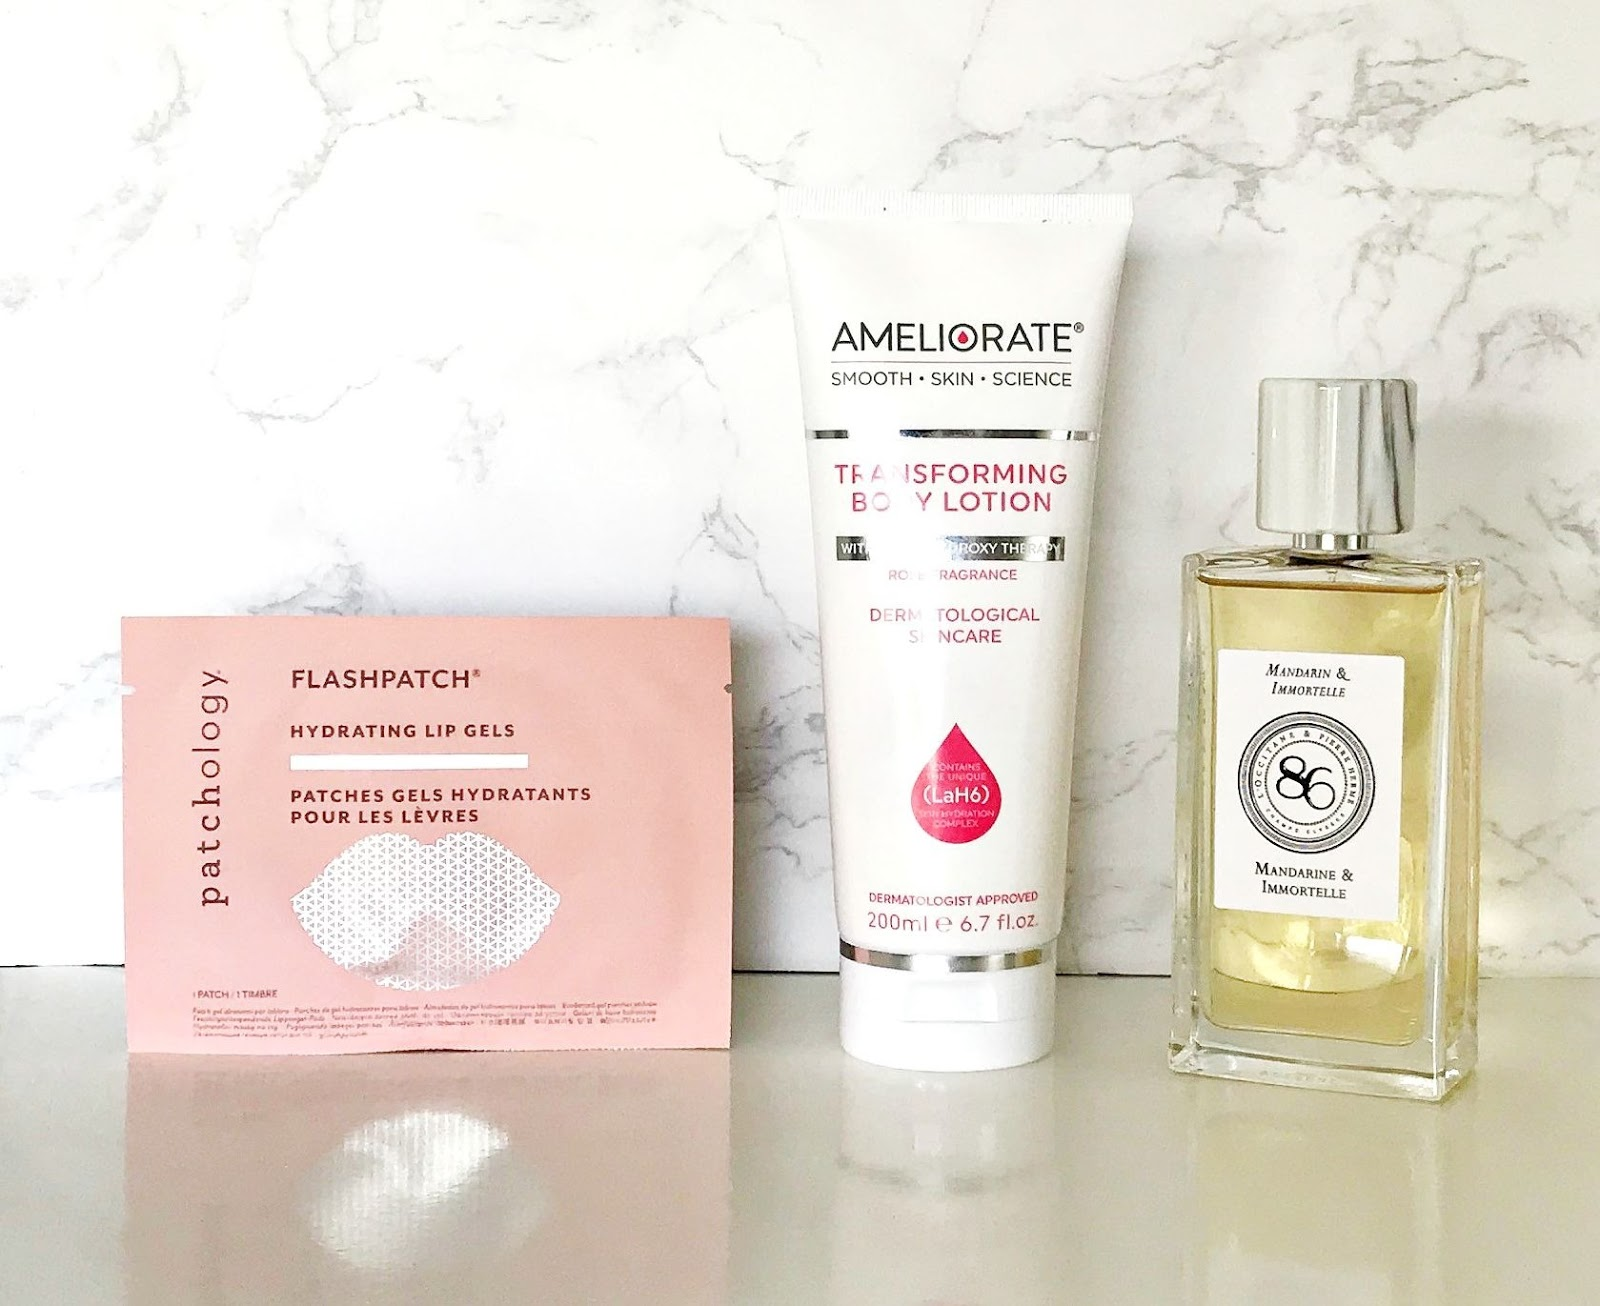 3 treats for 3 budgets, Patchology FlashPatch Hydrating Lip Gels, Ameliorate Transforming Body Lotion Rose Limited Edition, L'Occitane MANDARIN & IMMORTELLE,